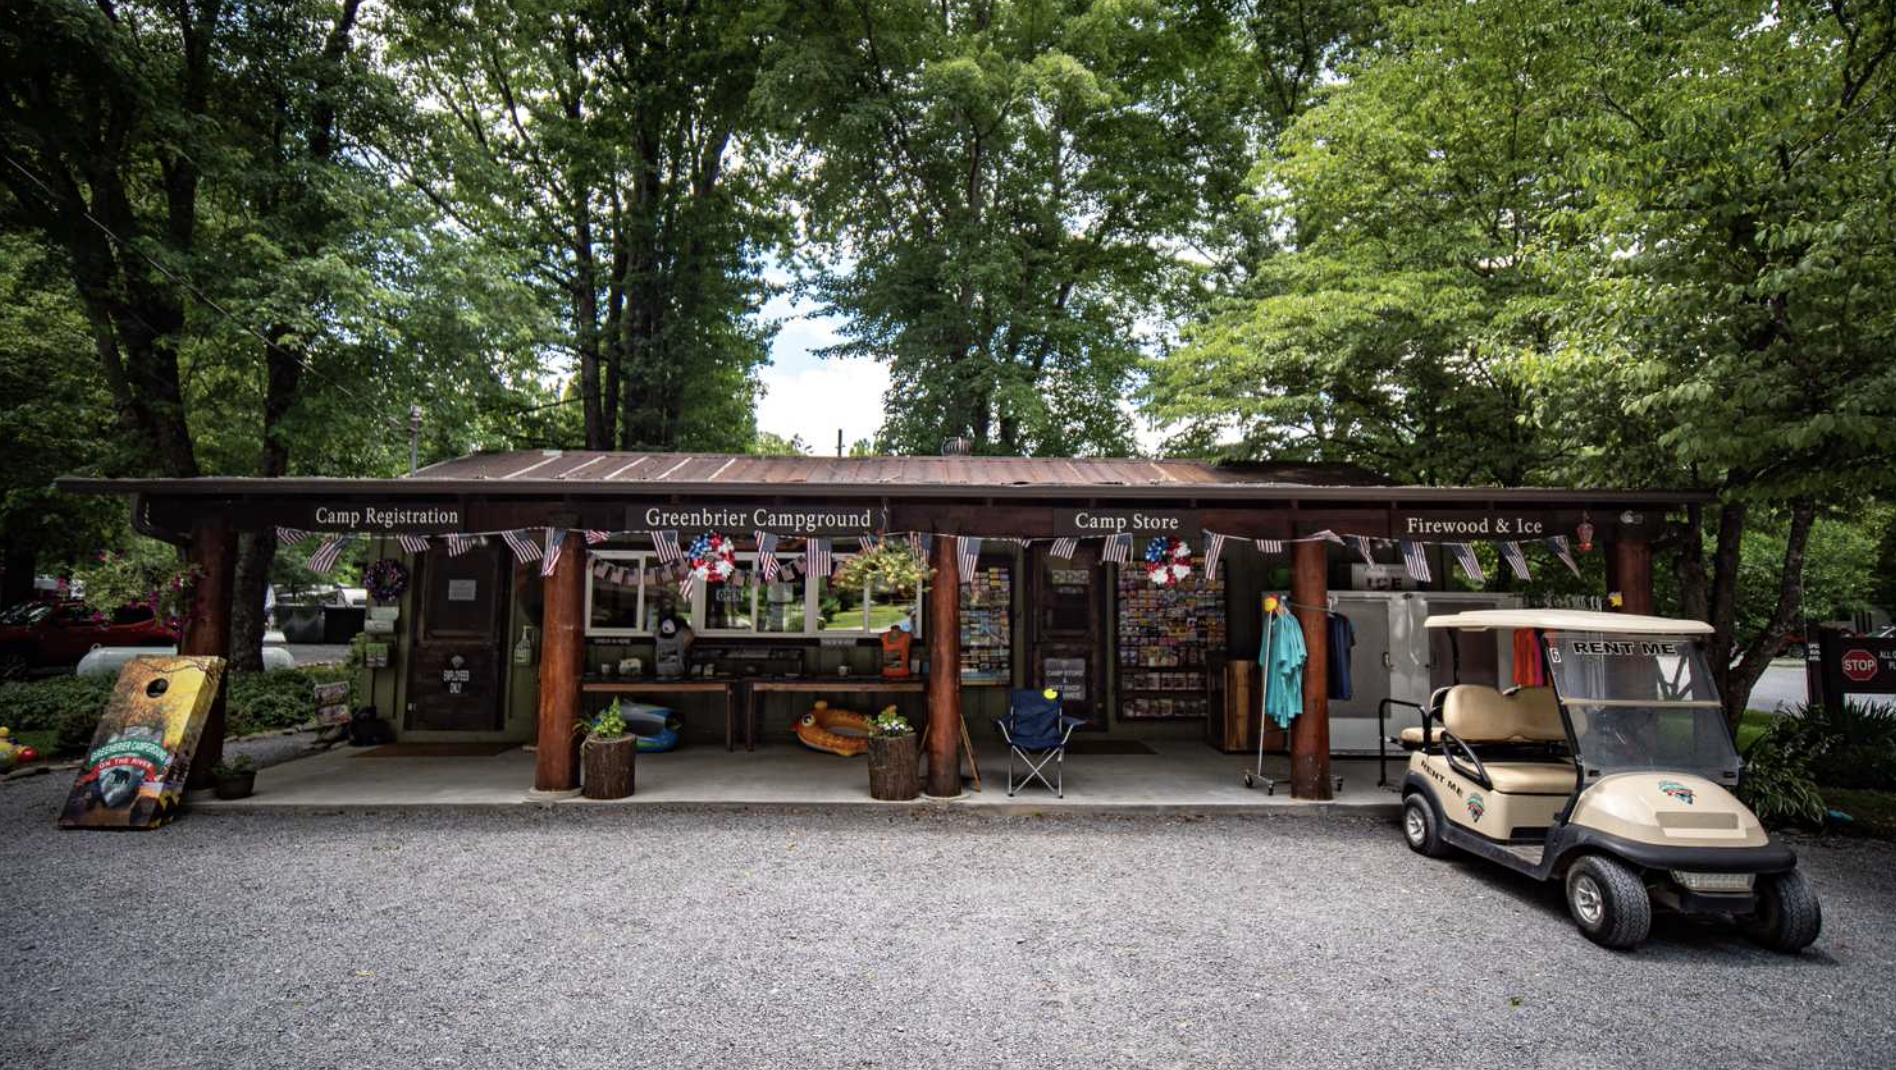 Camp store with golf cart in front at Greenbrier Campground in Tennesee